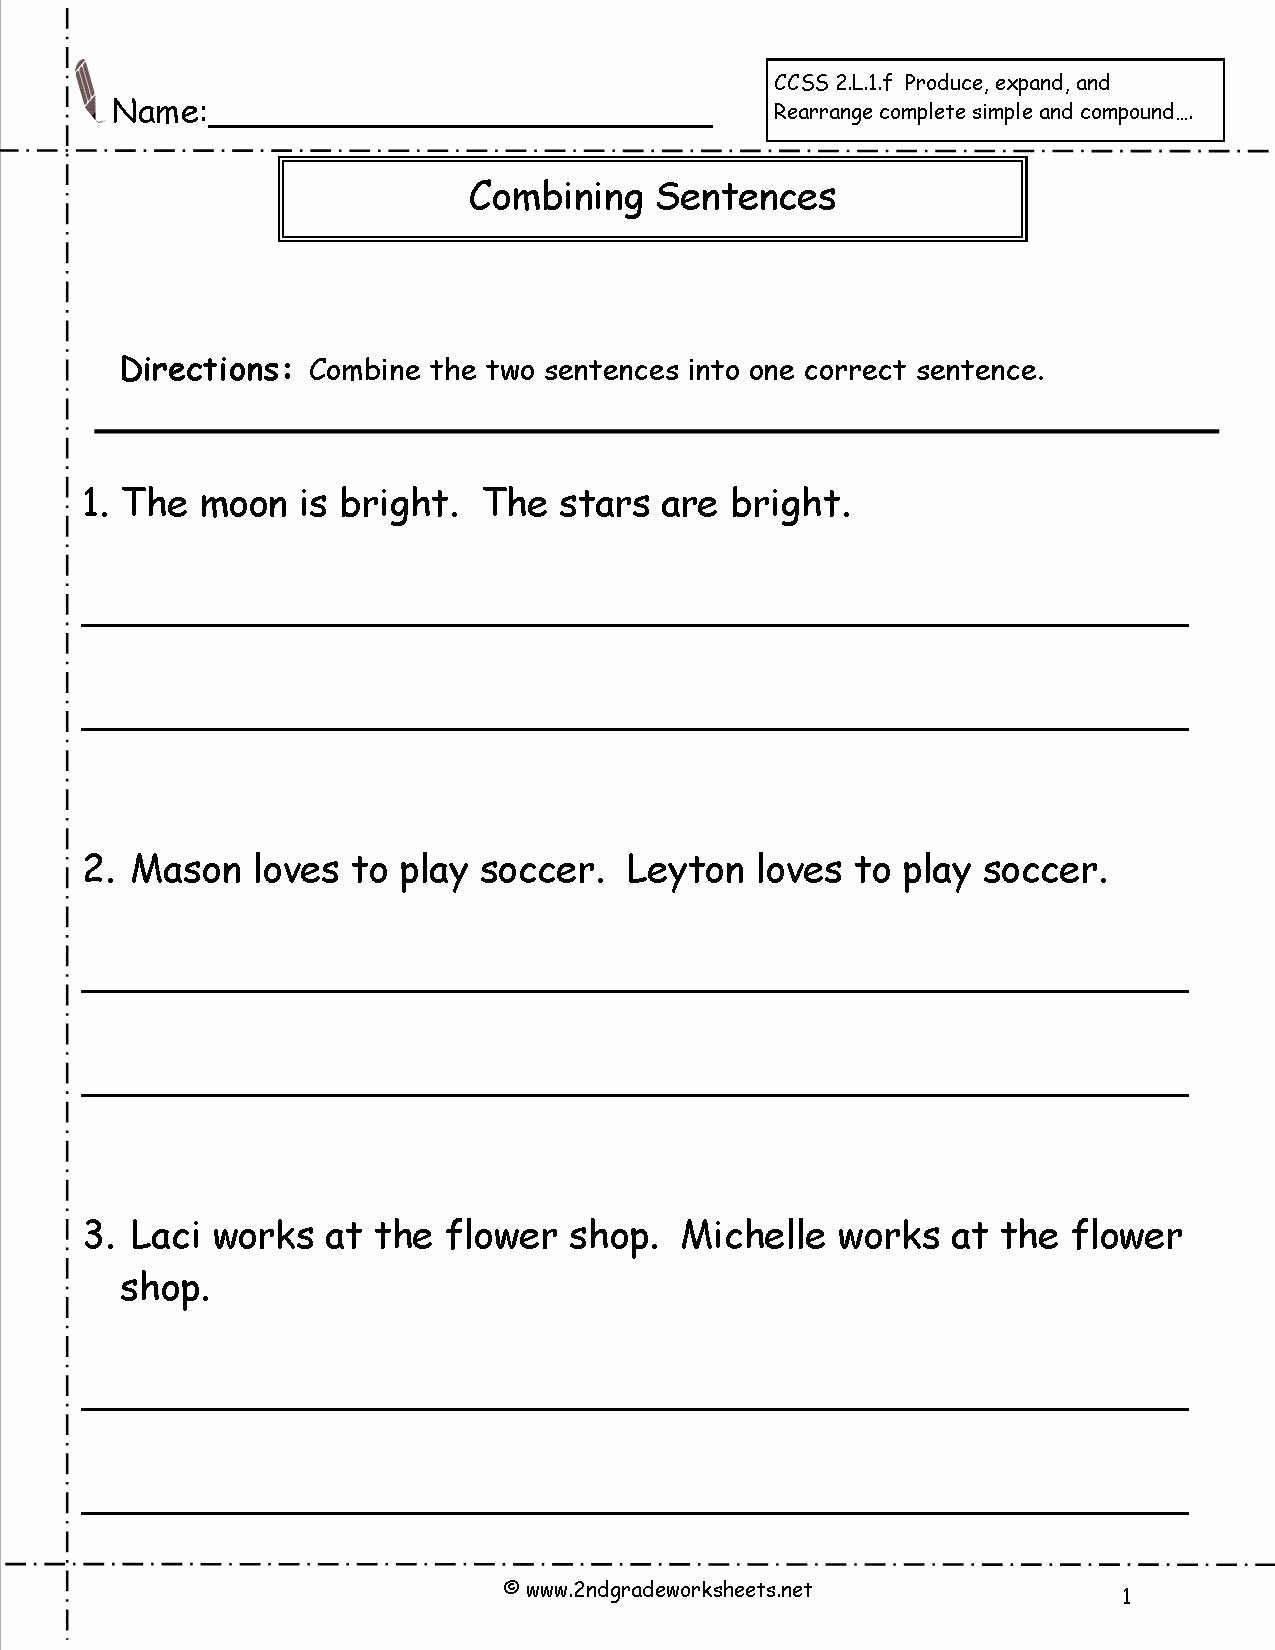 Simple and Compound Sentence Worksheet Unique Bining Sentences Worksheet Language Arts